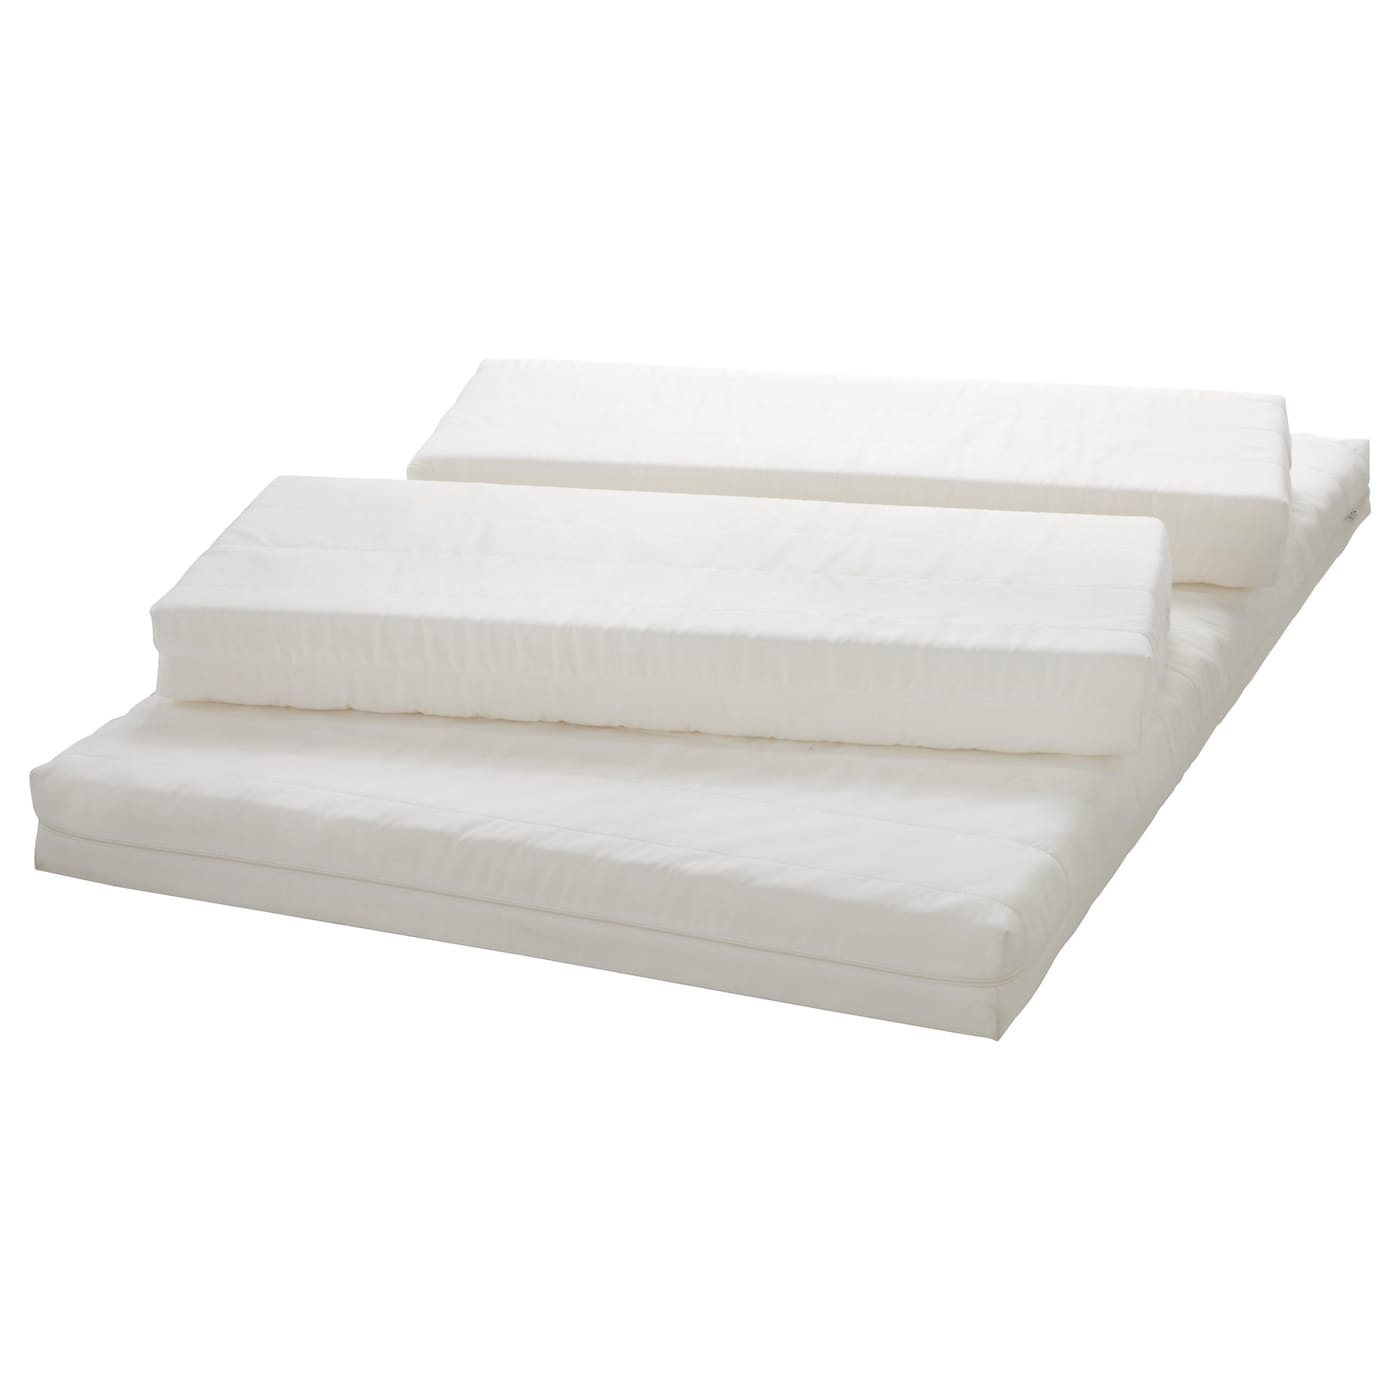 vyssa snosa mattress for extendable bed white 80x200 cm ikea. Black Bedroom Furniture Sets. Home Design Ideas